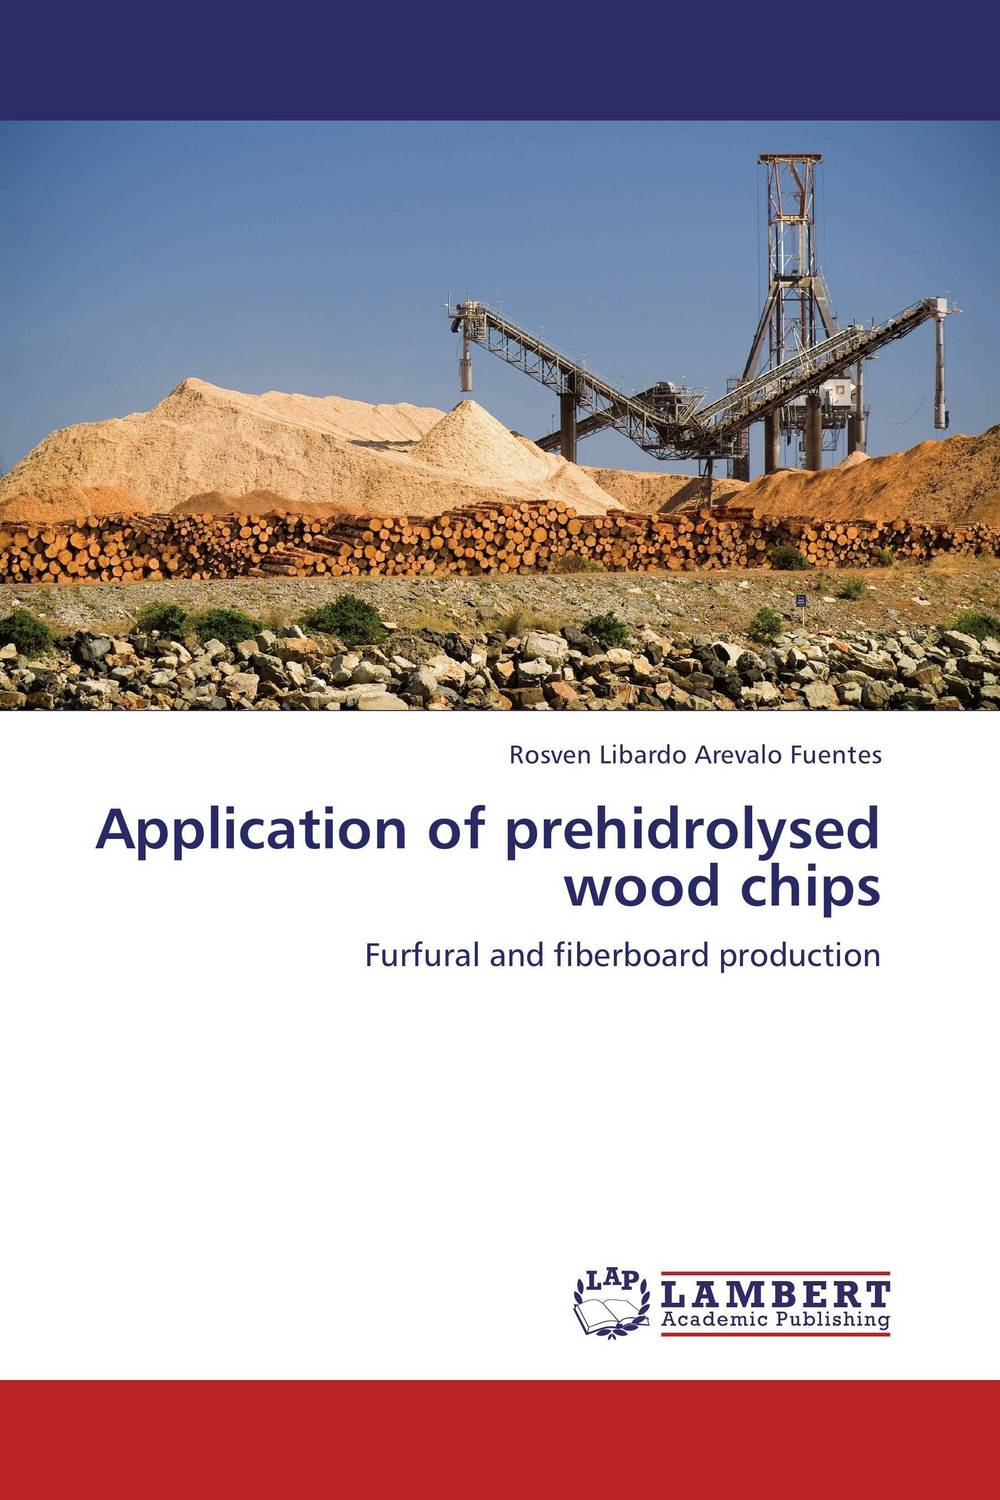 Application of prehidrolysed wood chips parnas bibliotheca microbiologica brucella phages properties and application